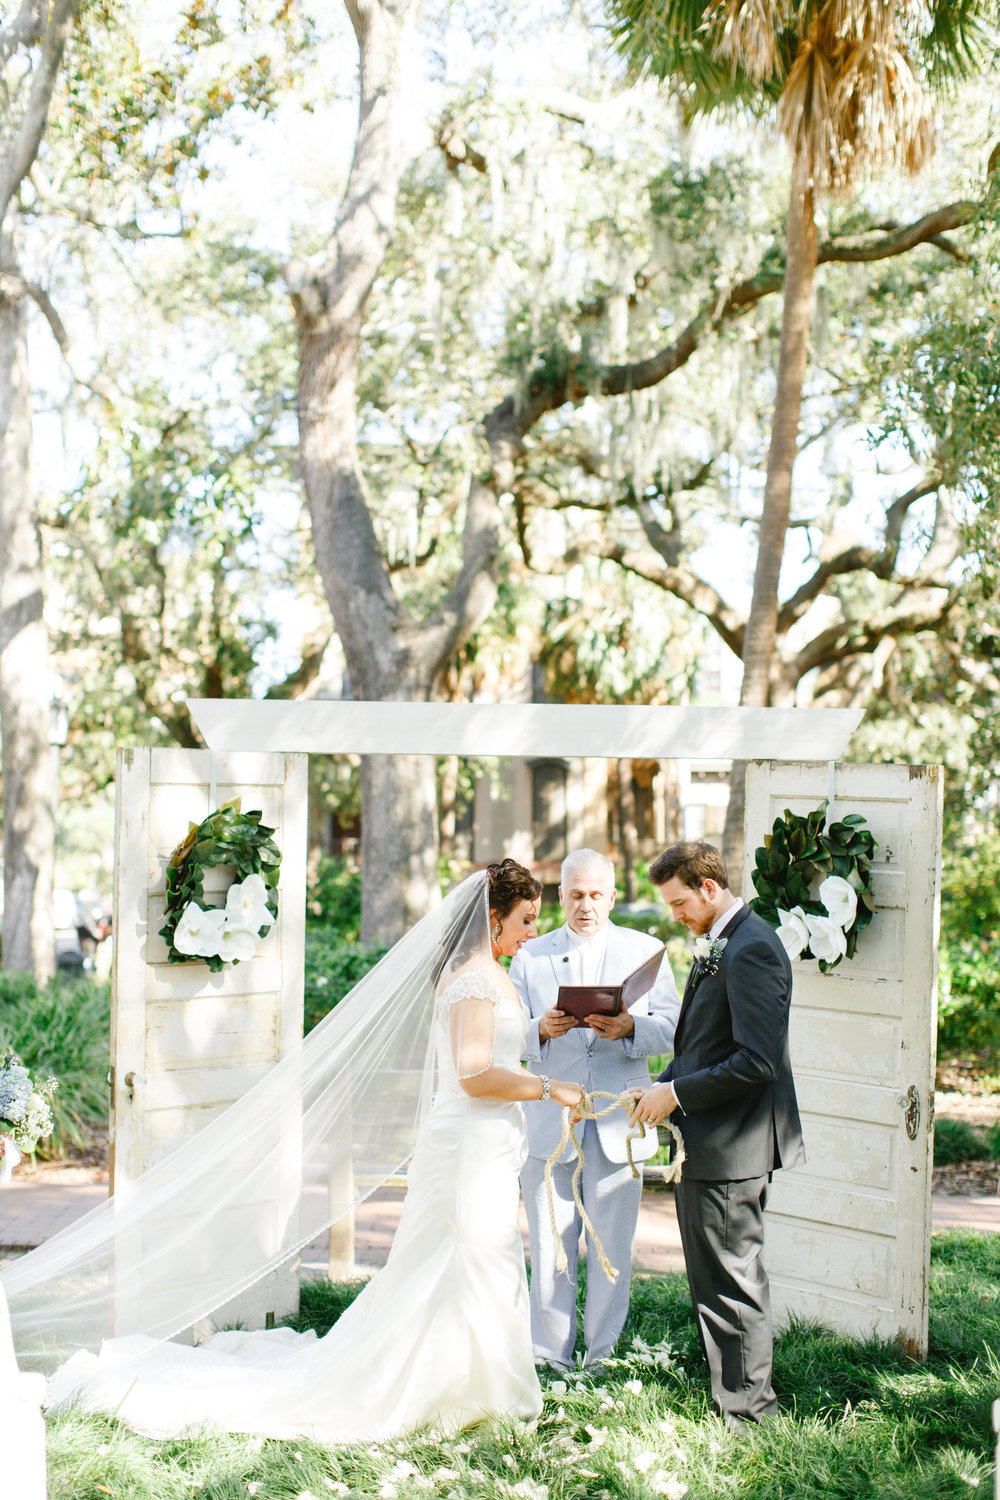 ivory-and-beau-bridal-boutique-aubrie-and-adam-the-happy-bloom-photography-savannah-wedding-planner-savannah-wedding-coordinator-19.jpg